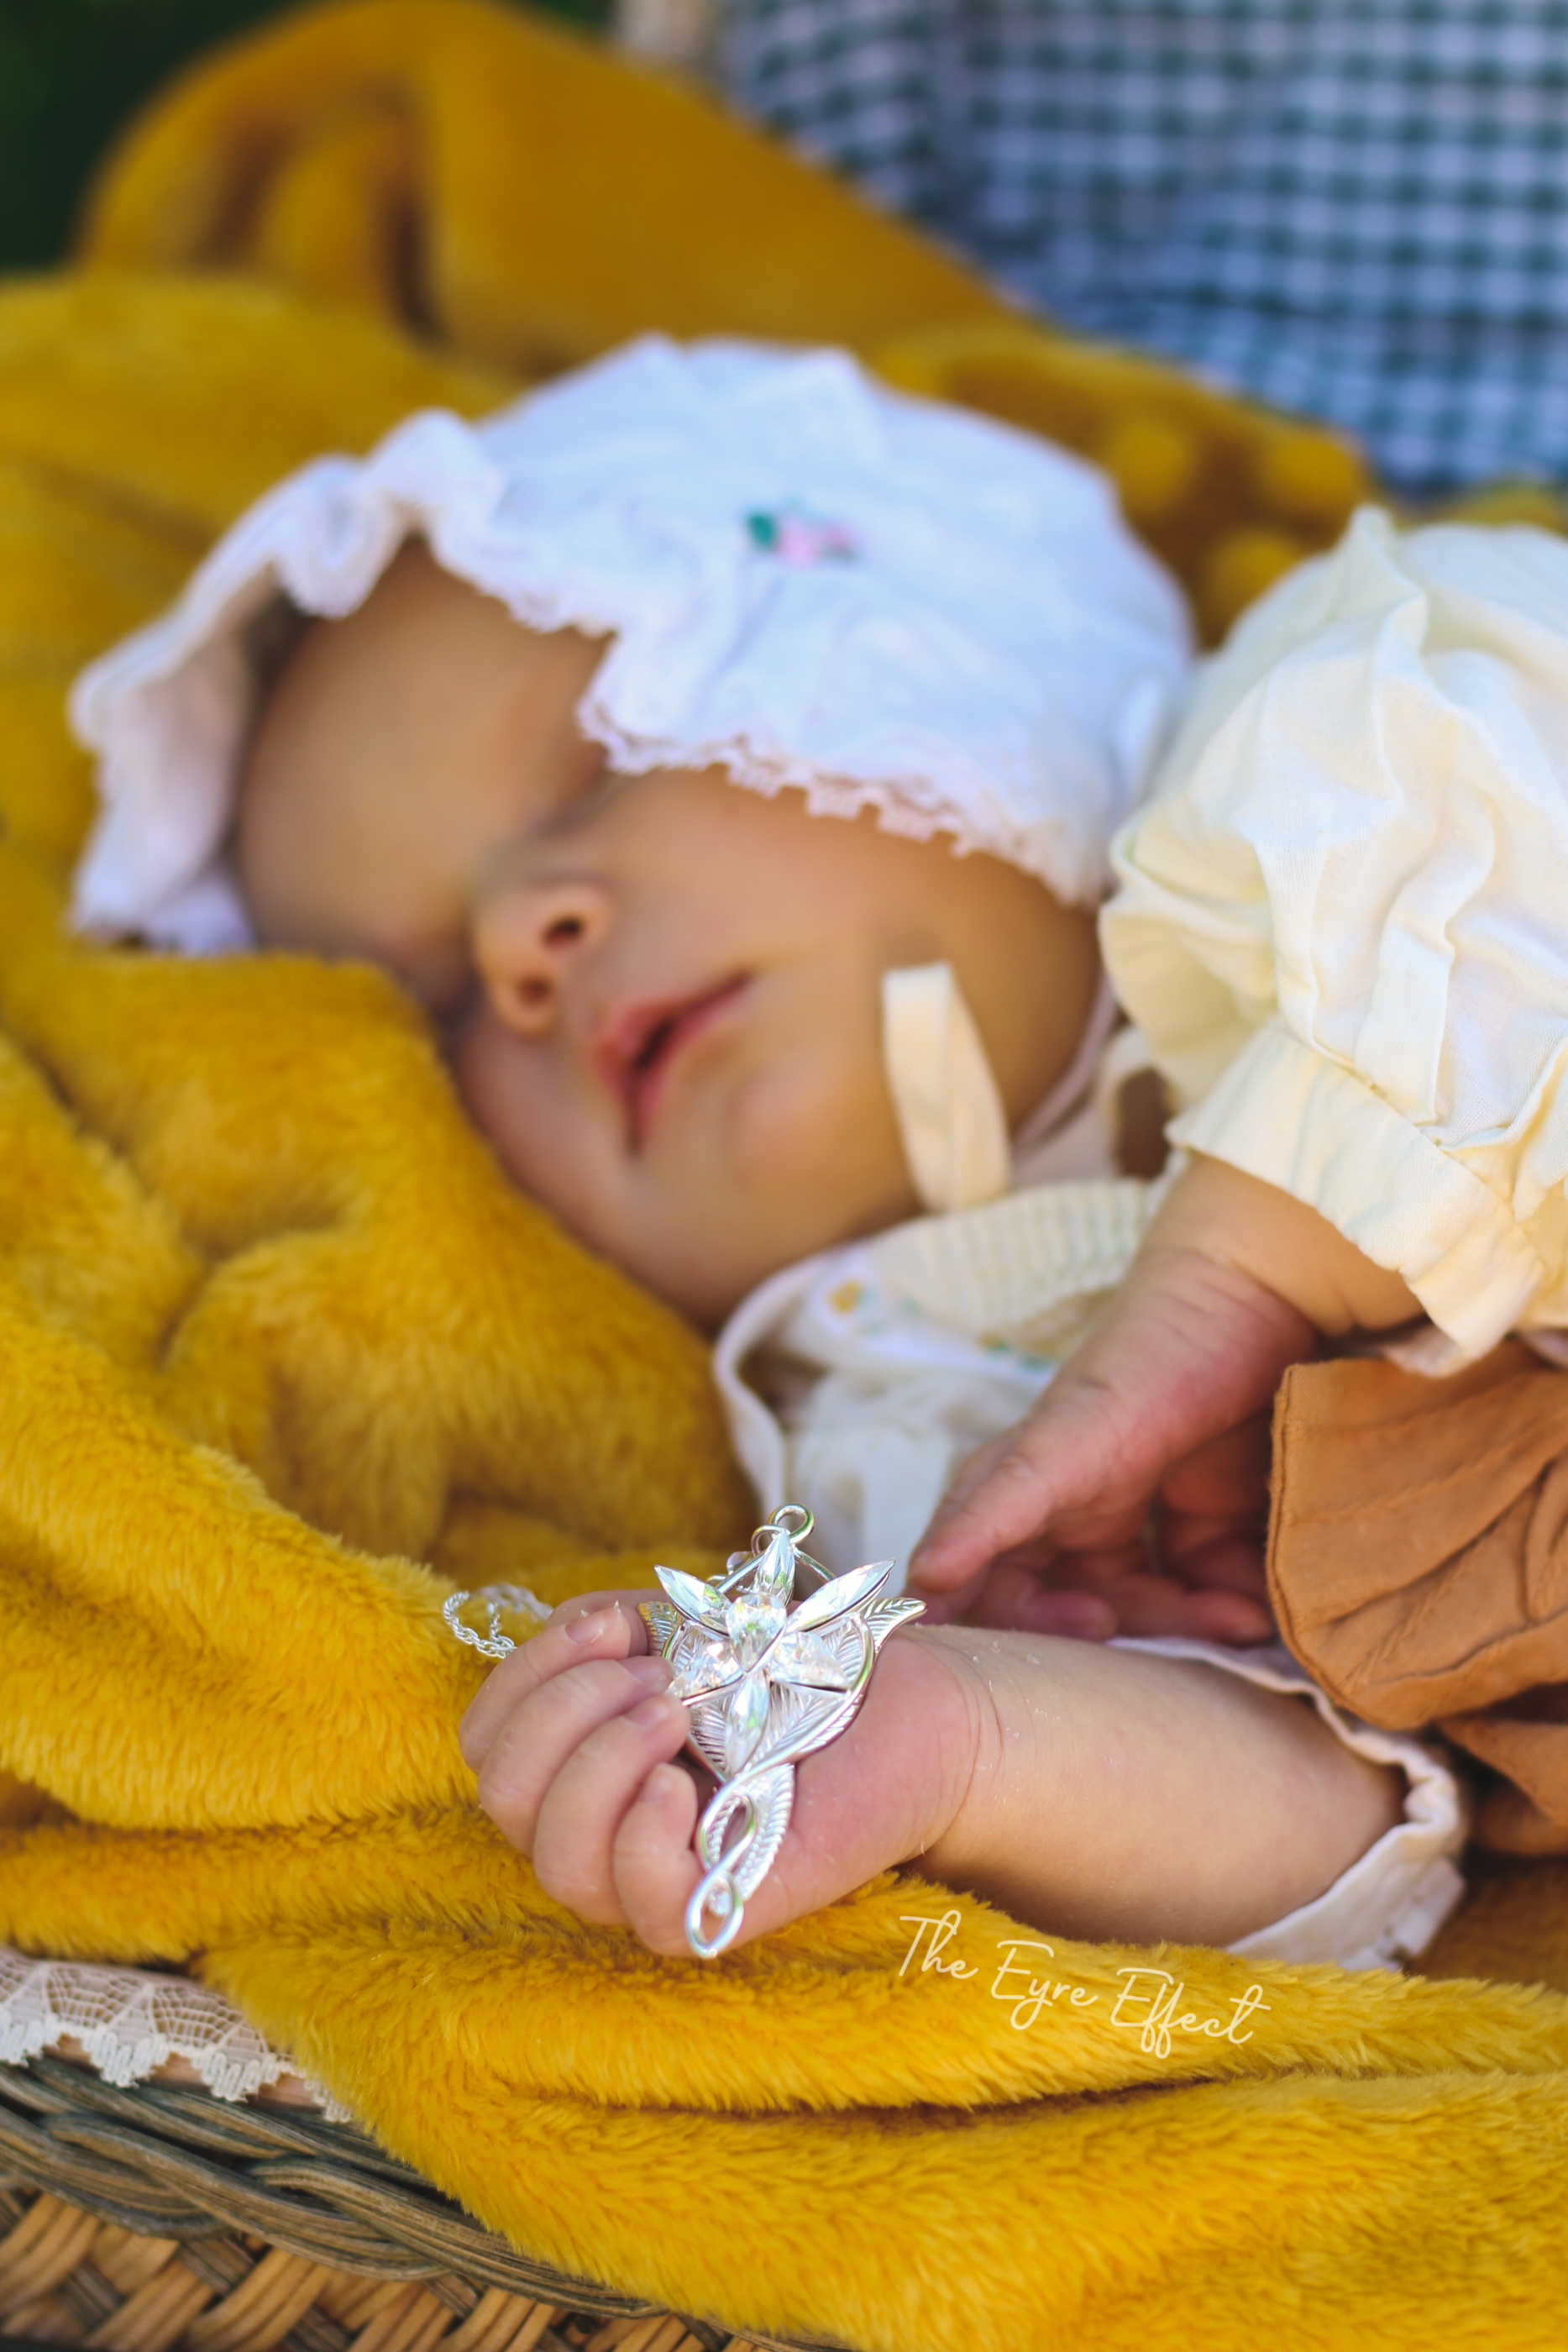 Lord of the Rings Newborn Photoshoot